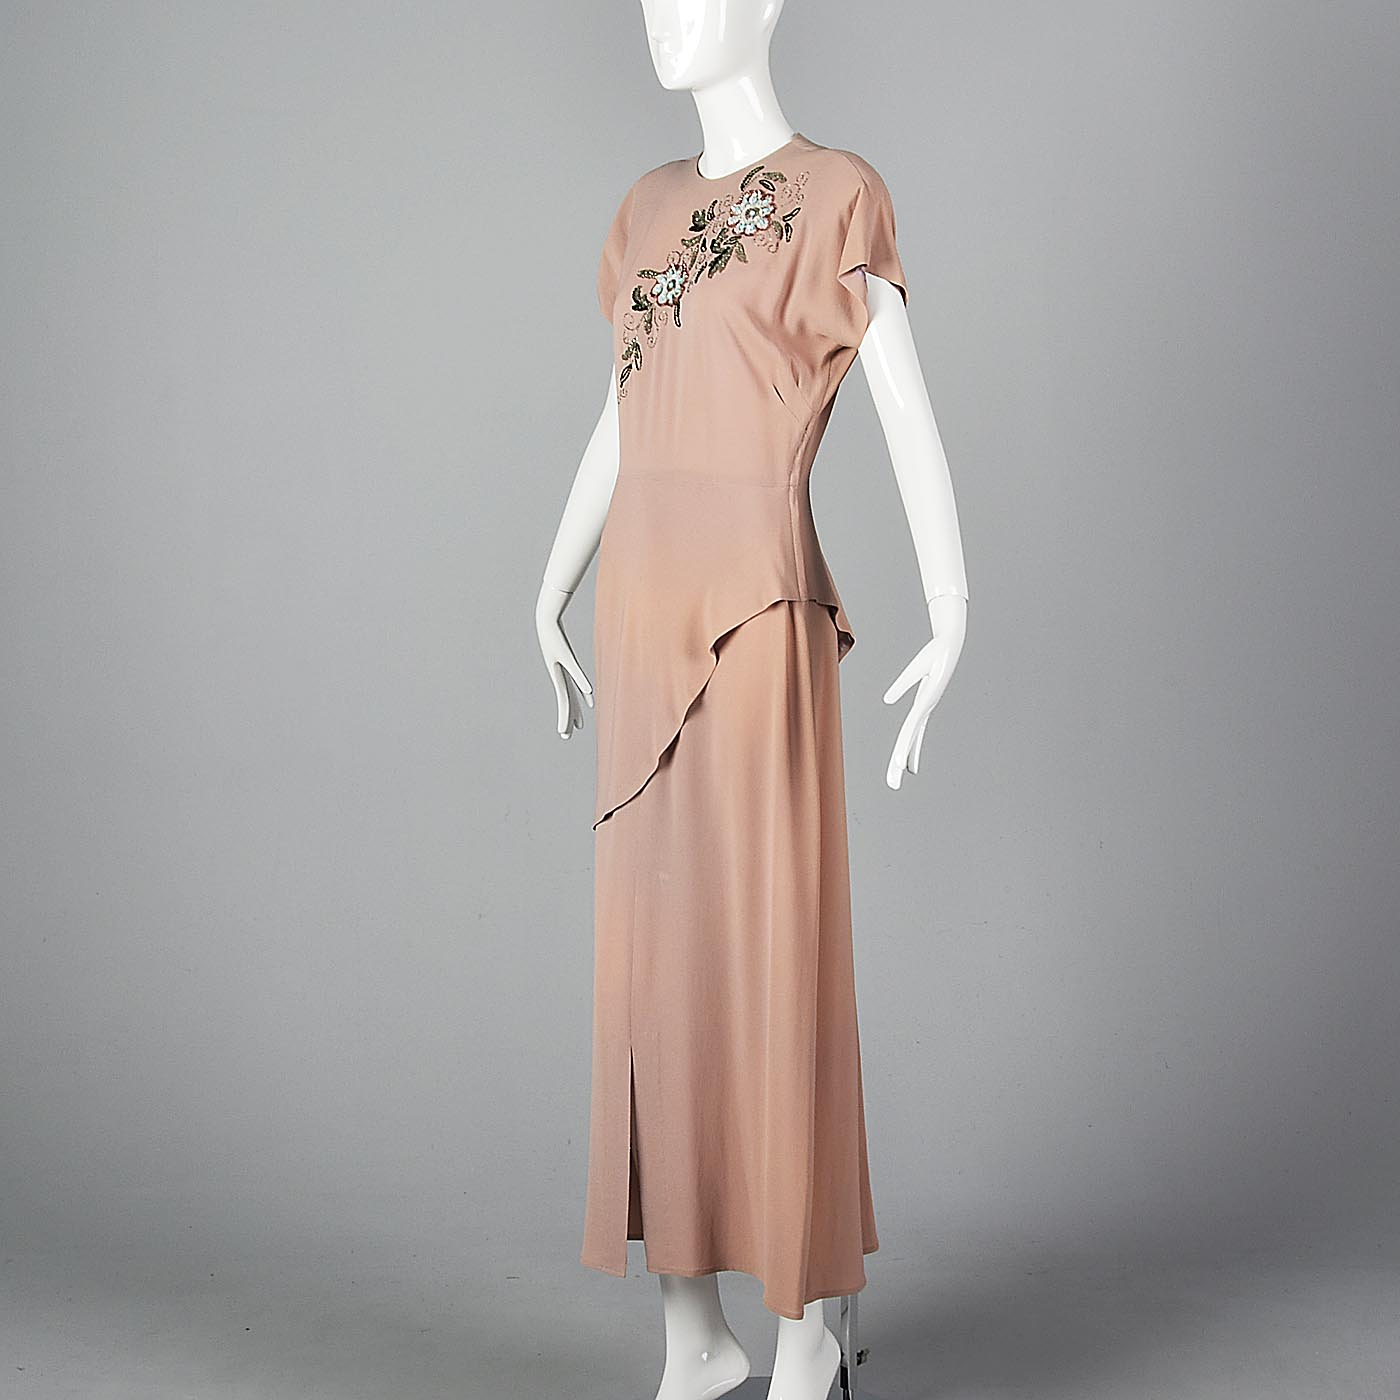 1940s Peach Crepe Gown with Floral Beaded Bodice